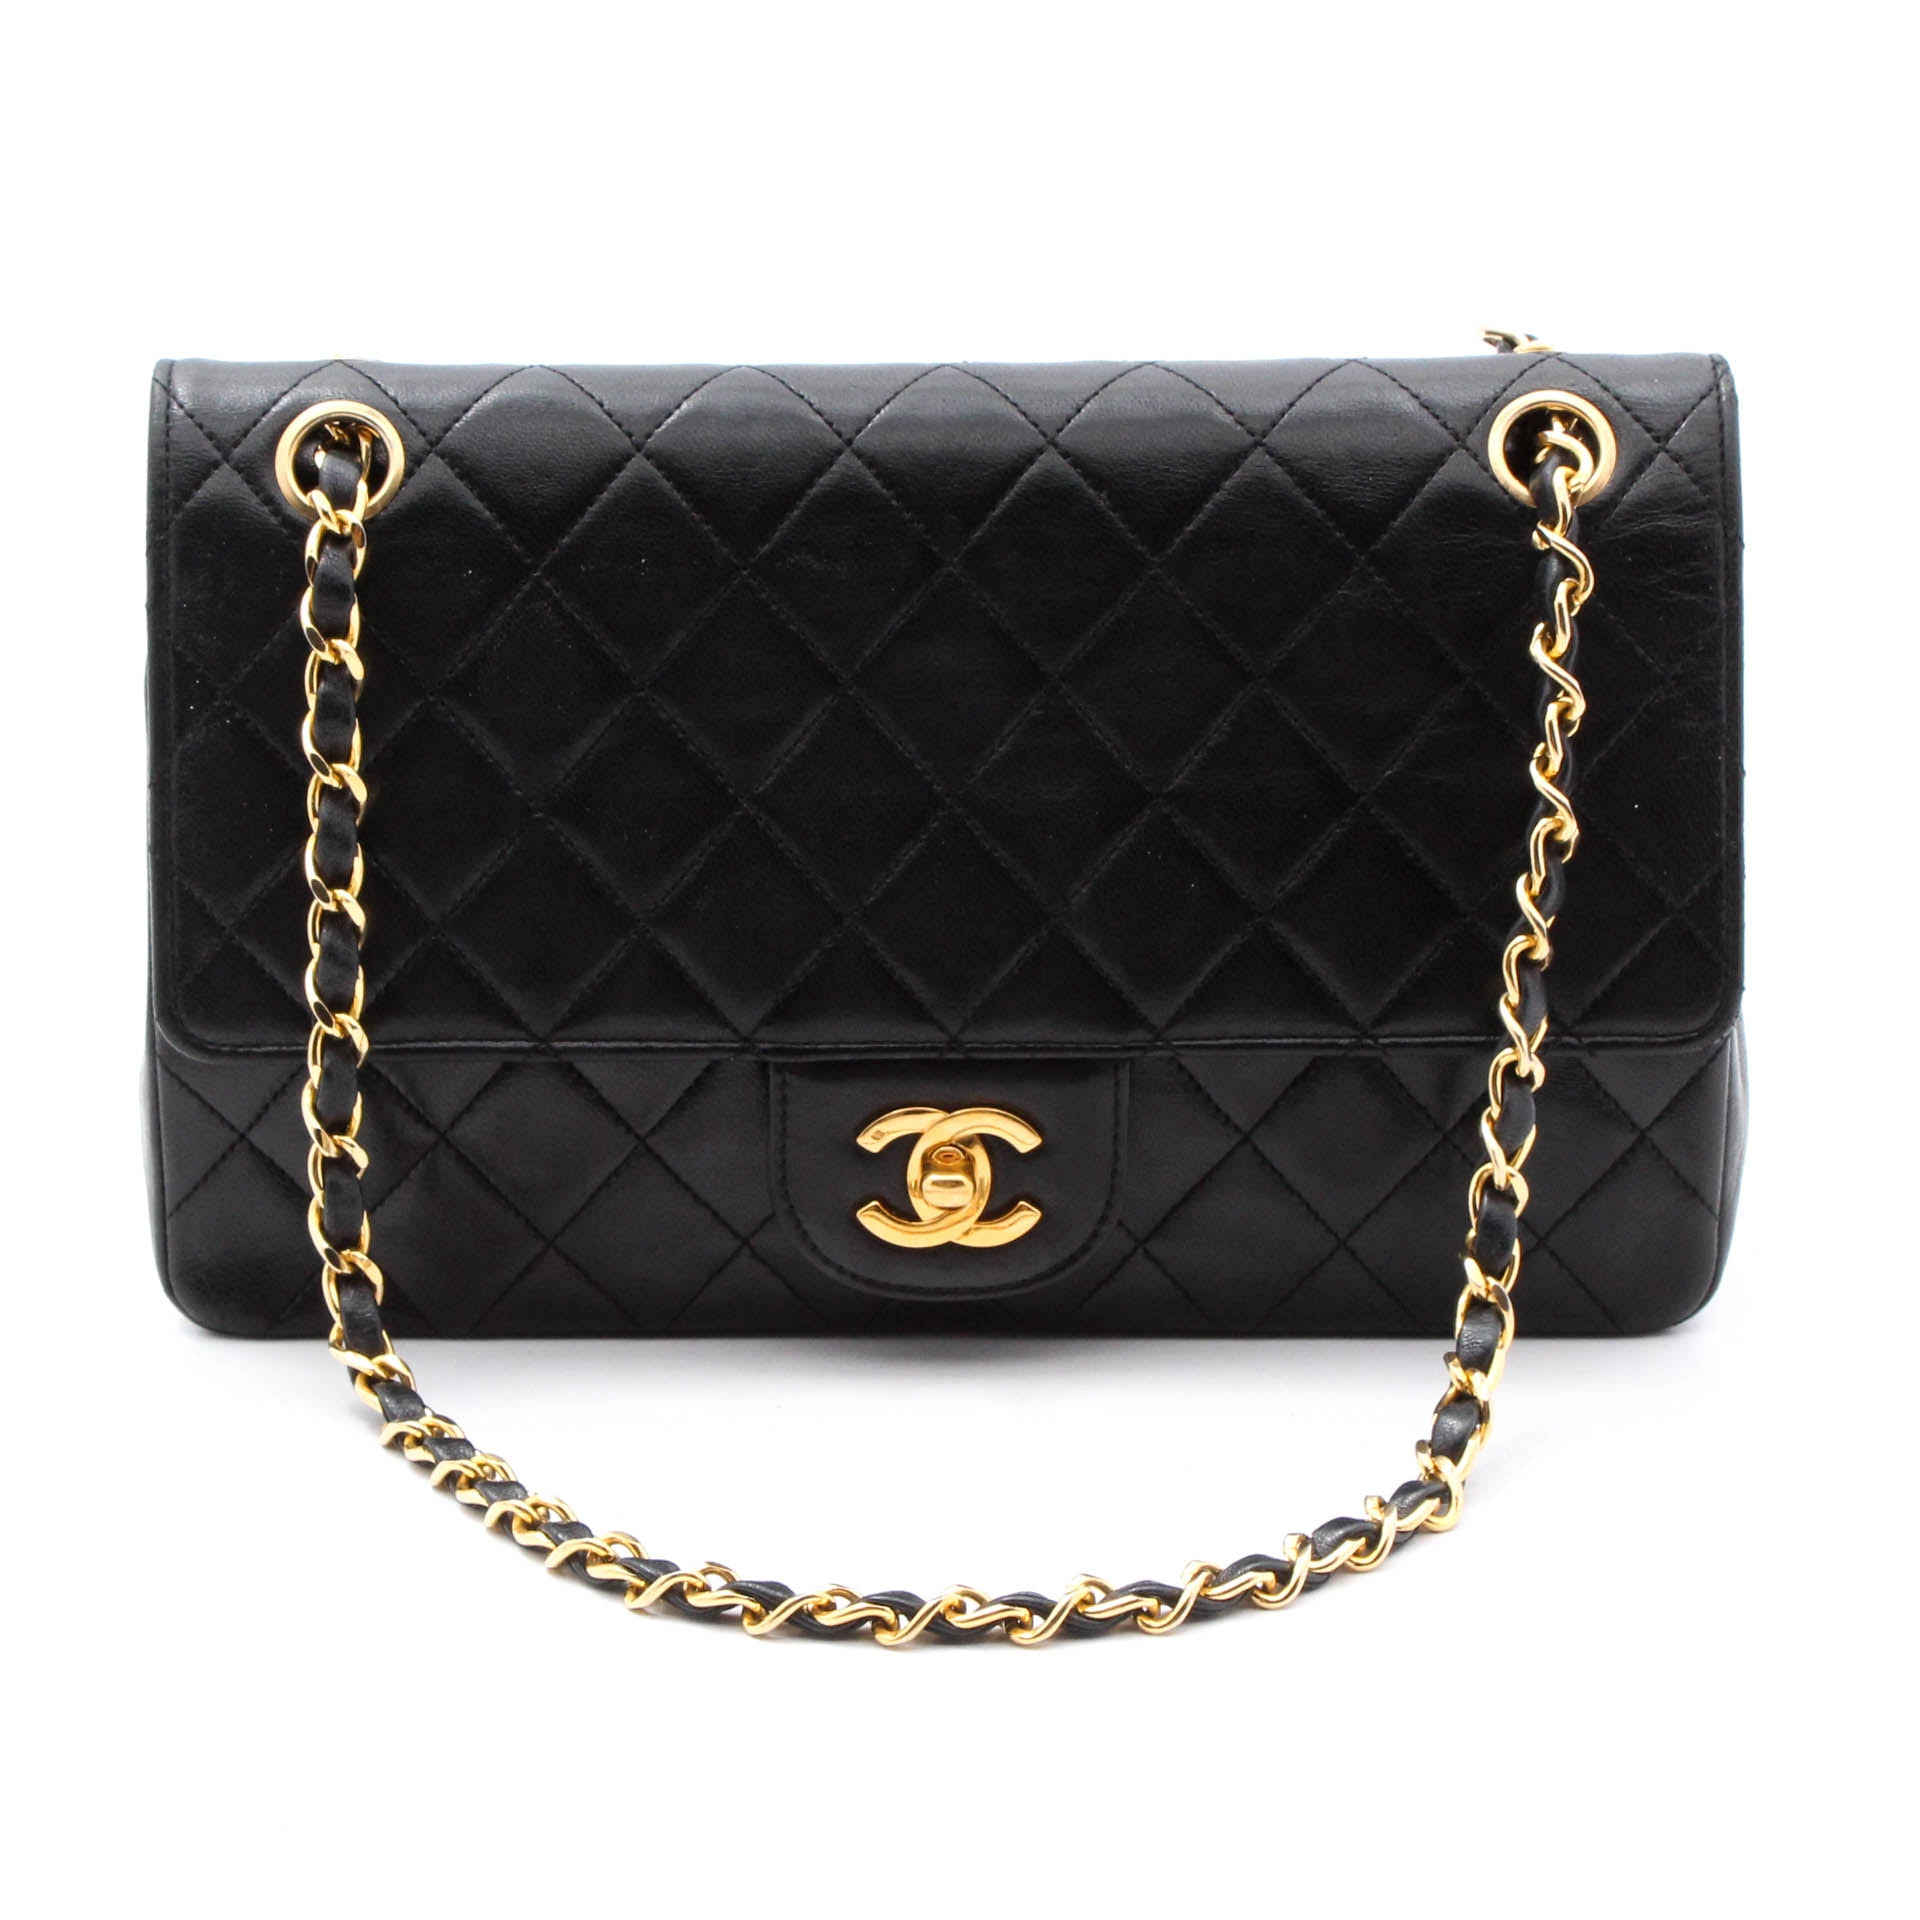 Chanel Black Leather Handbag with Iconic Closure